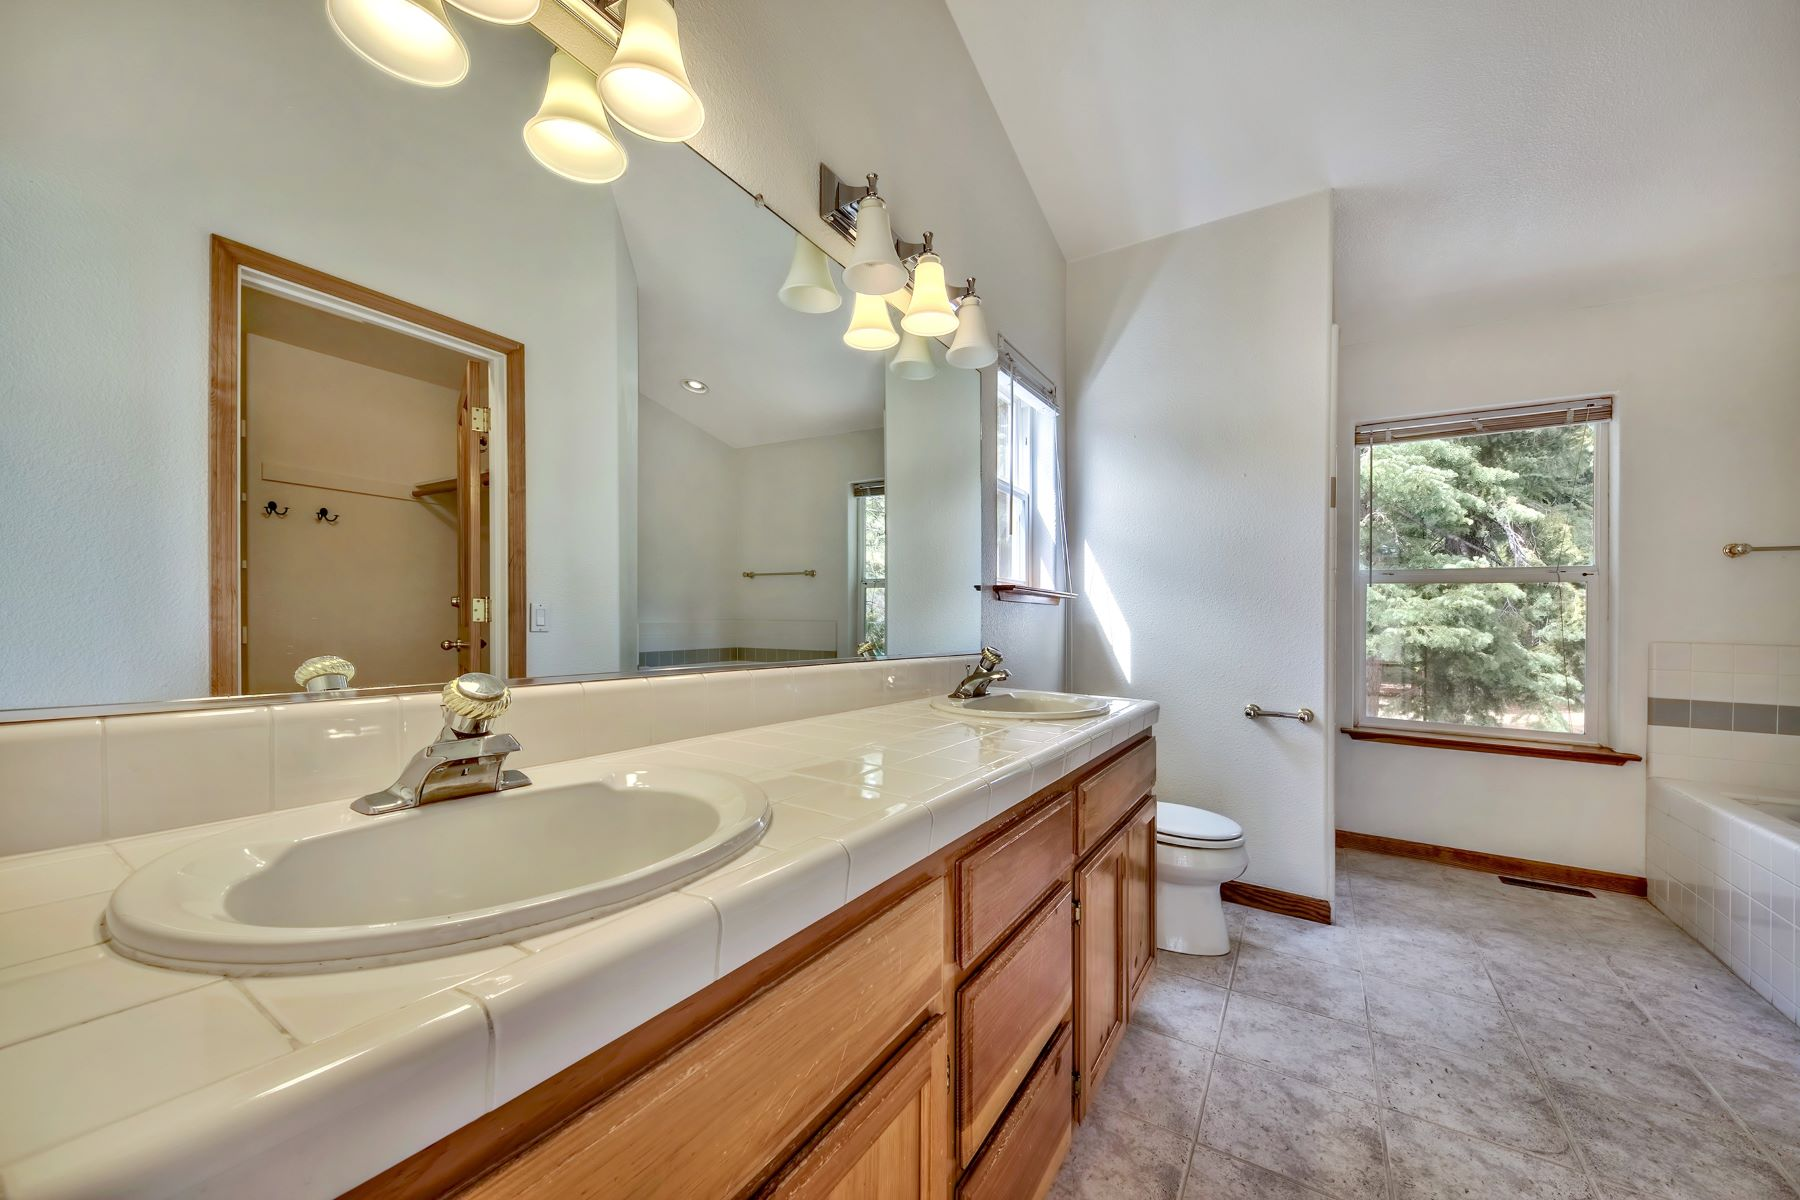 Additional photo for property listing at 7511 Kingswood Drive, Kings Beach , CA 7511 Kingswood Drive Kings Beach, California 96143 United States